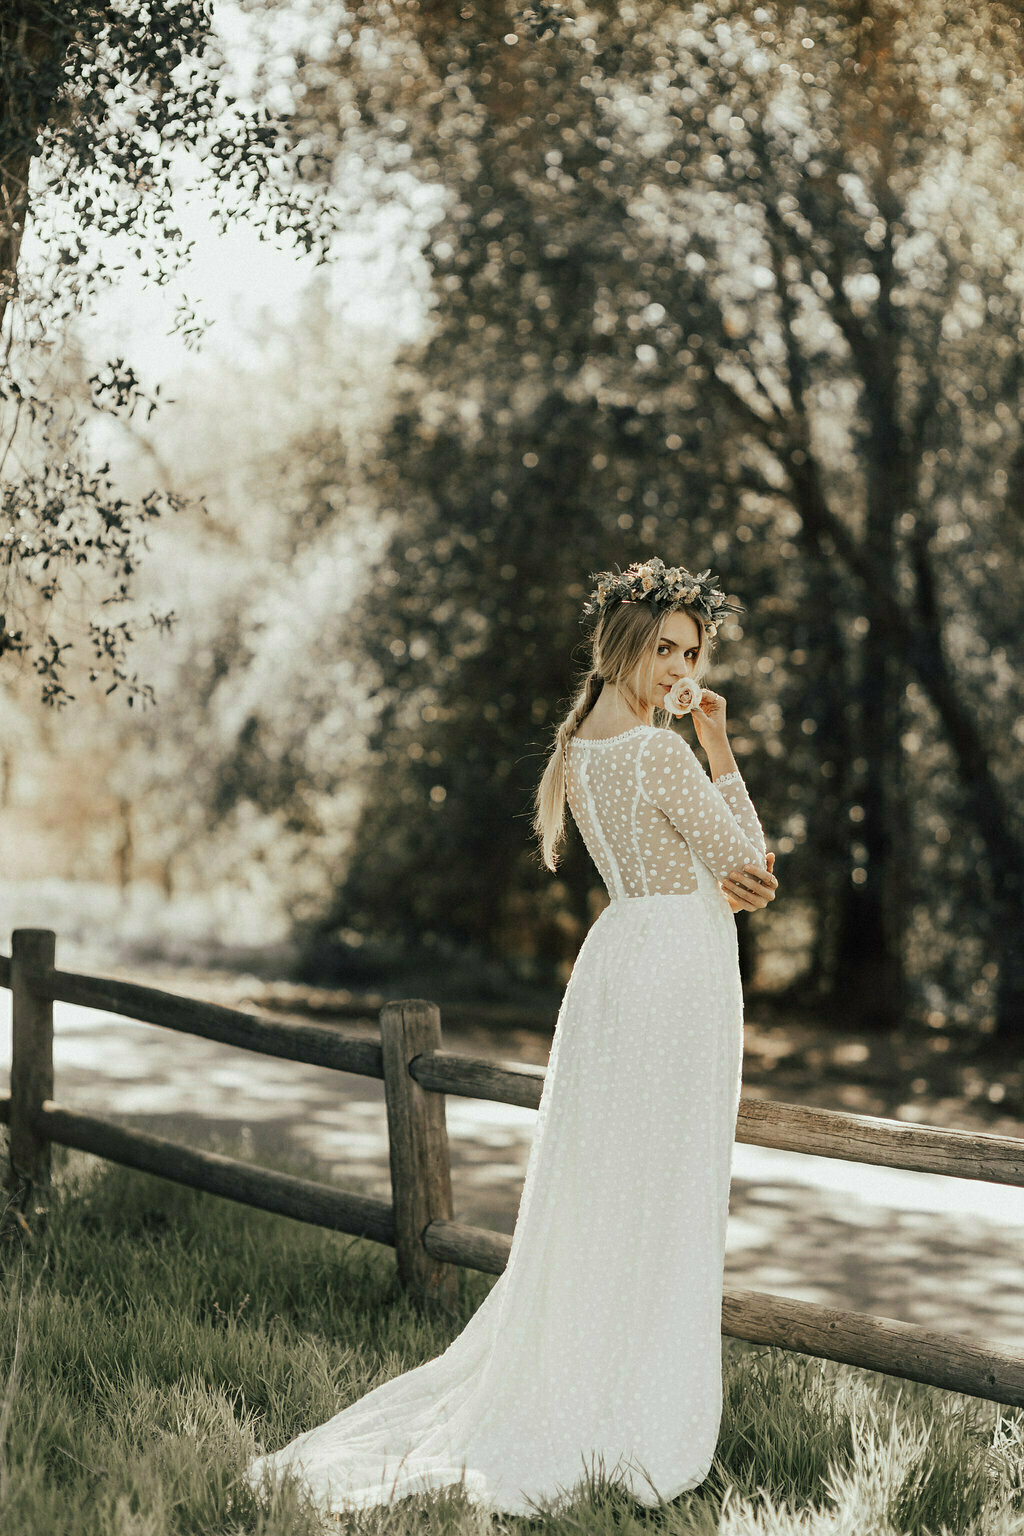 dreamers-and-lovers-whimsical-simple-wedding-dress-in-cotton-dotted-lace-fitted-long-sleeves